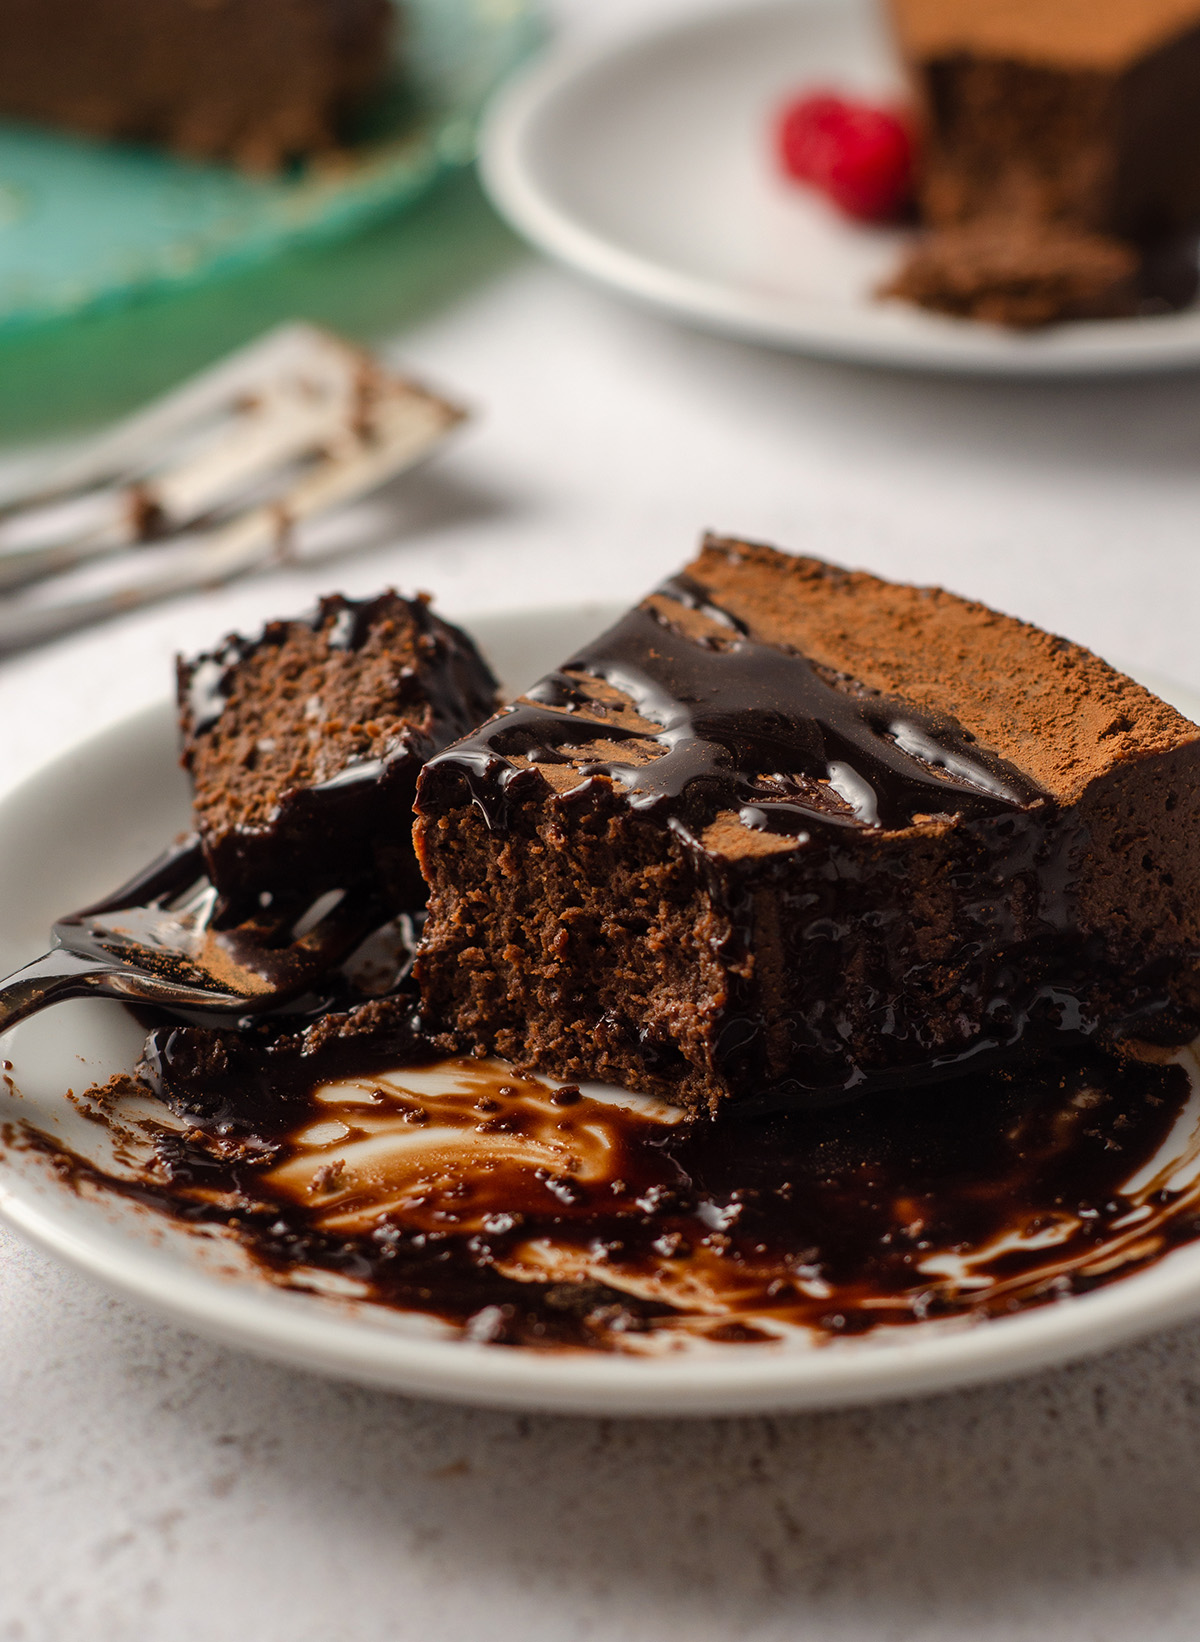 a slice of gluten free dairy free chocolate cake with chocolate syrup on it